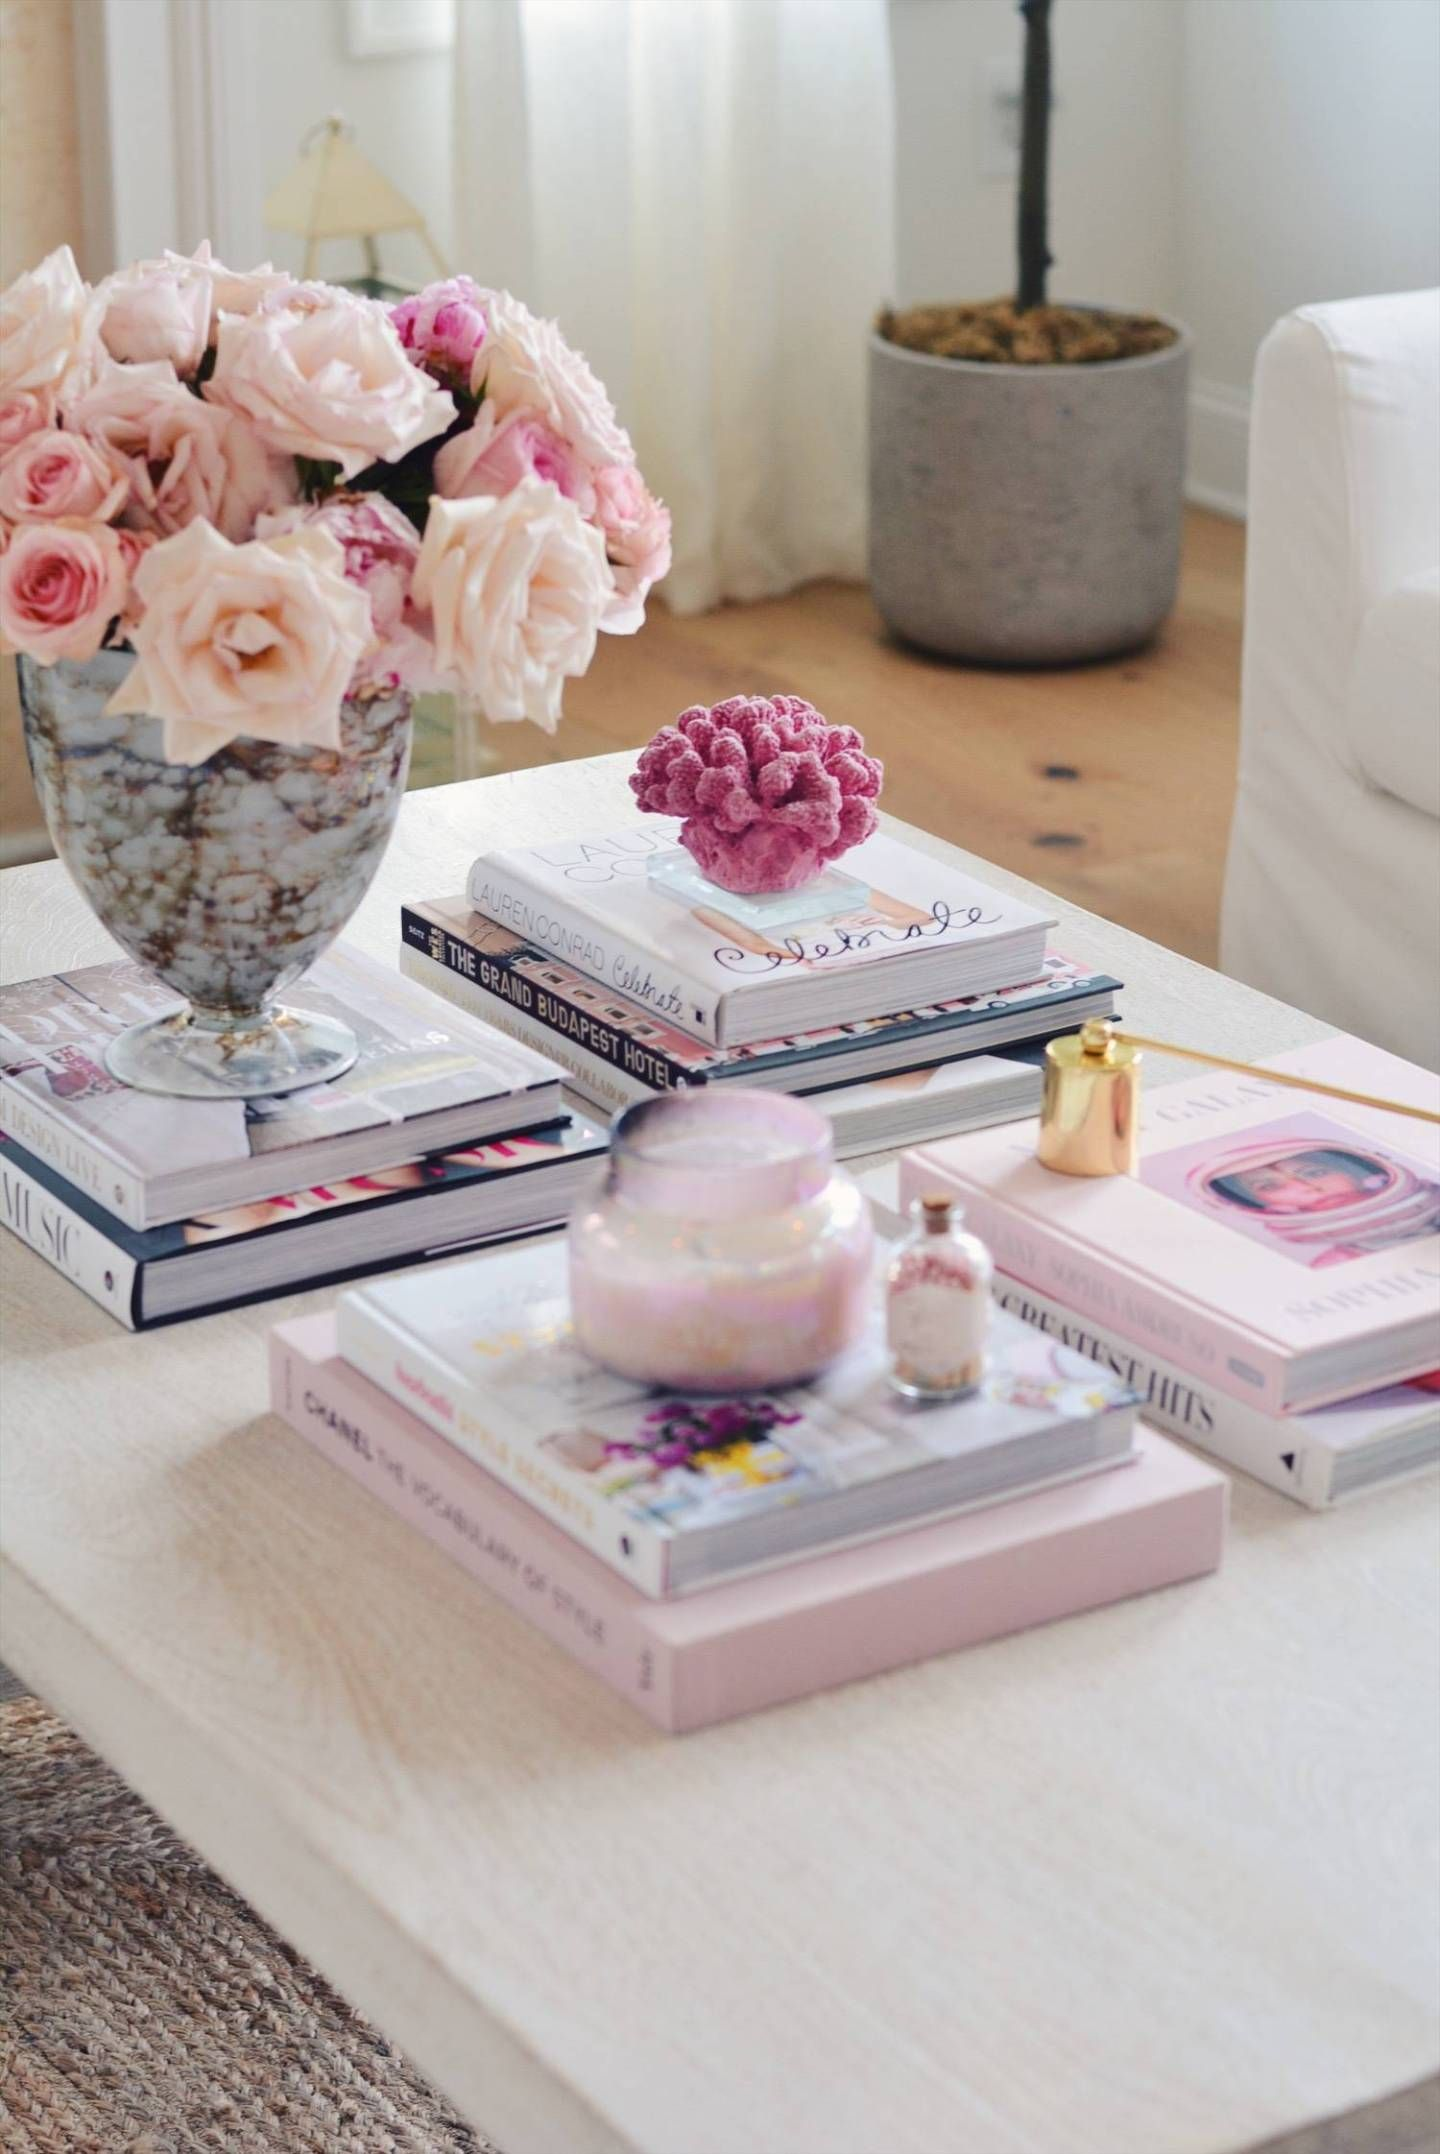 Coffee Table Books Round Up The Pink Dream In 2020 Coffee Table Books Decor Decorating Coffee Tables Coffee Table Books